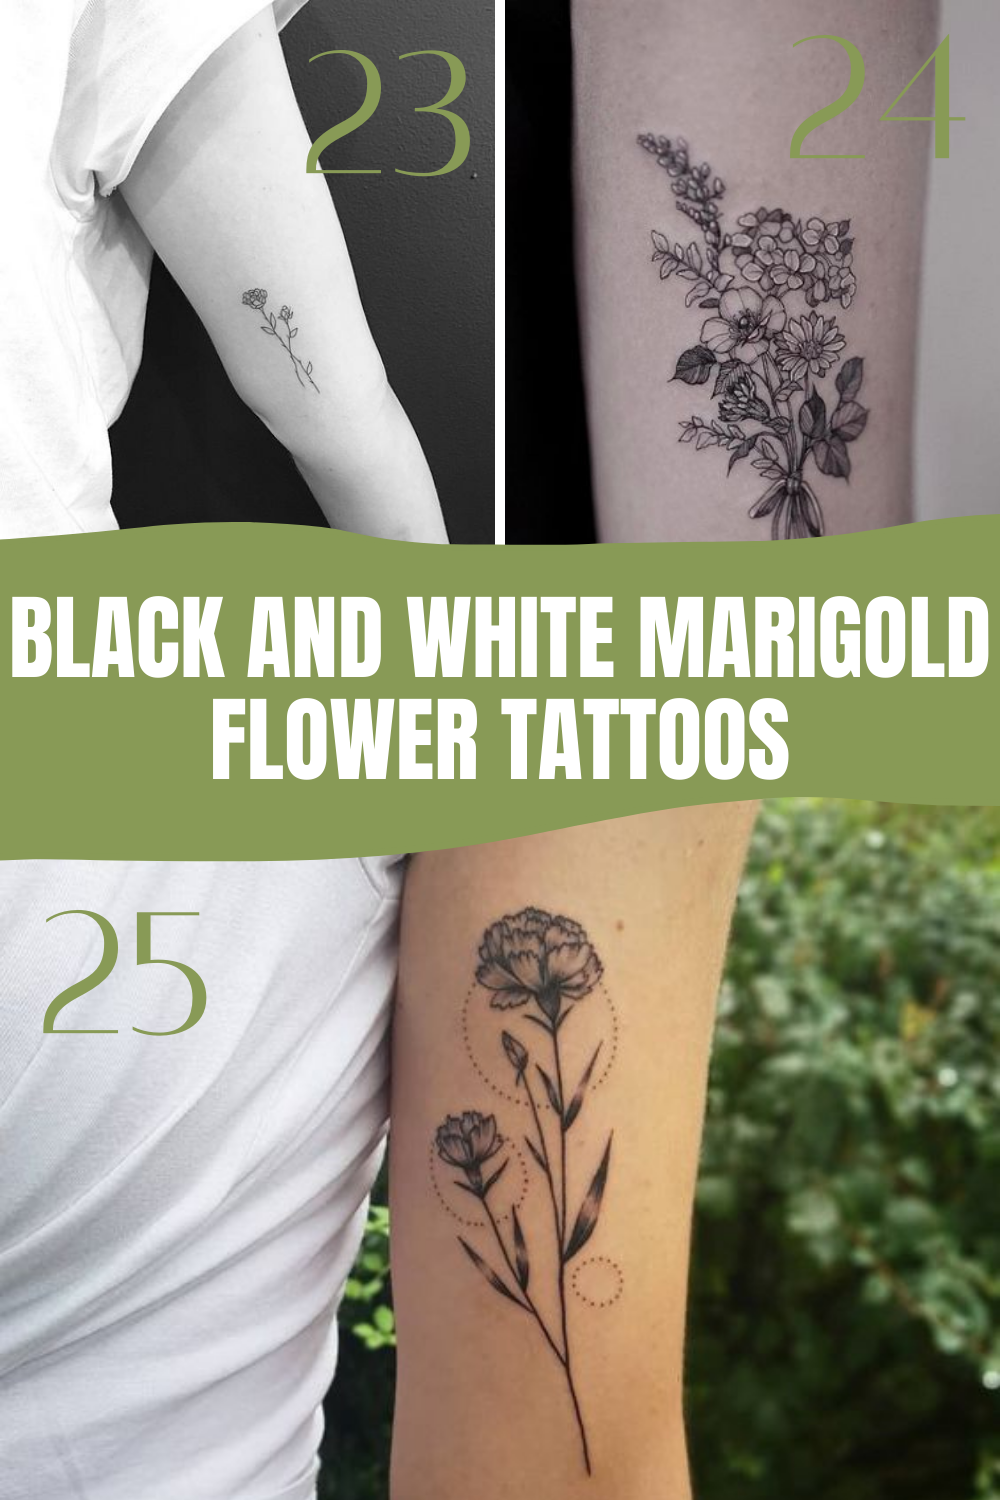 Black and white Marigold Flower Tattoos